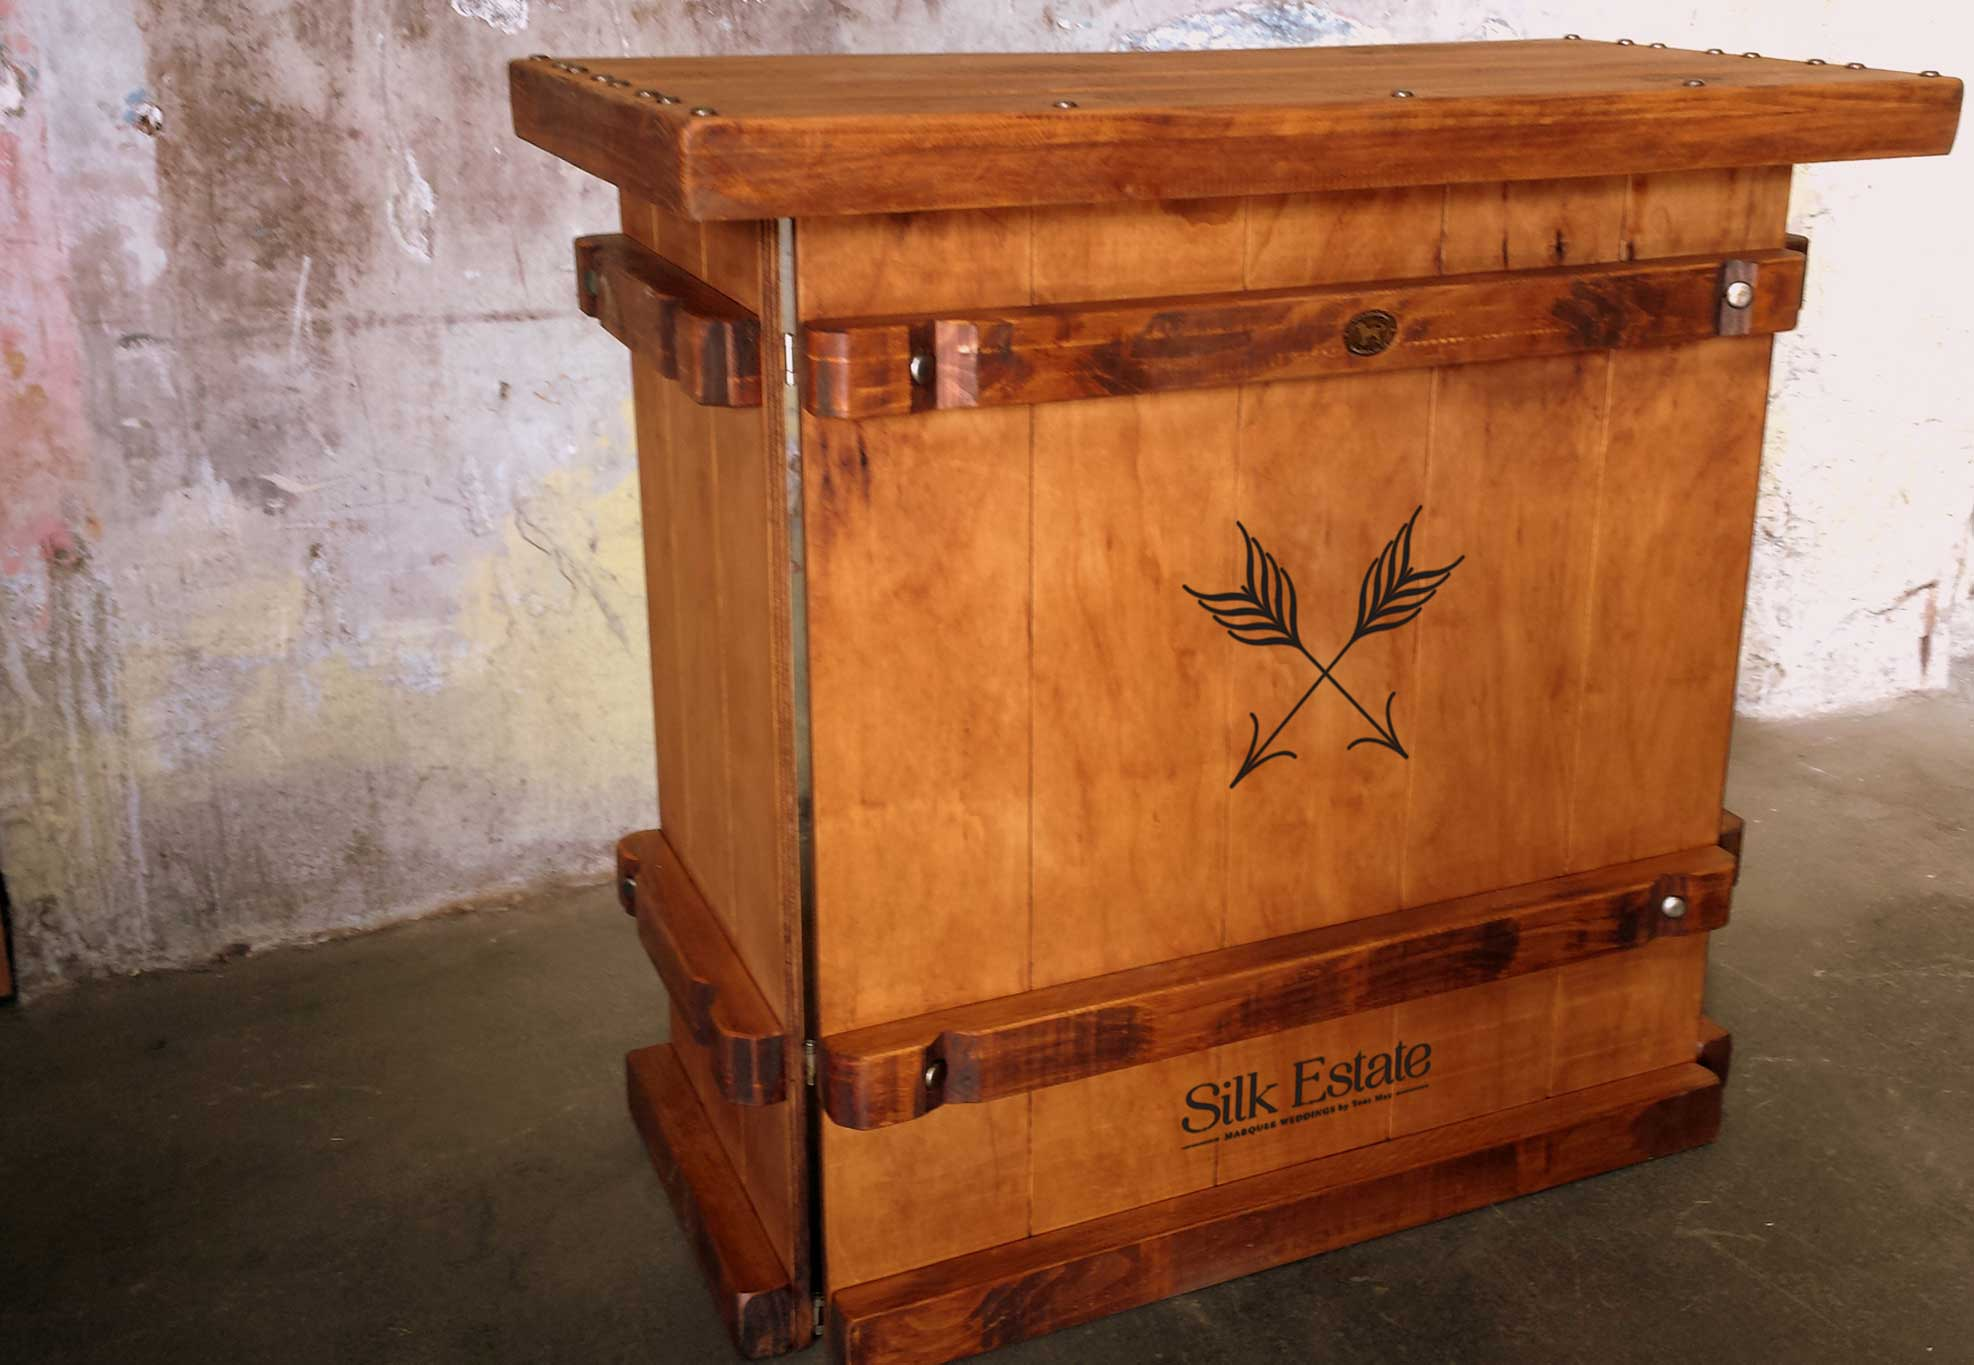 silk-estate-marquee-weddings-and-events-styling-and-hire-furniture-bar-woolpress-1